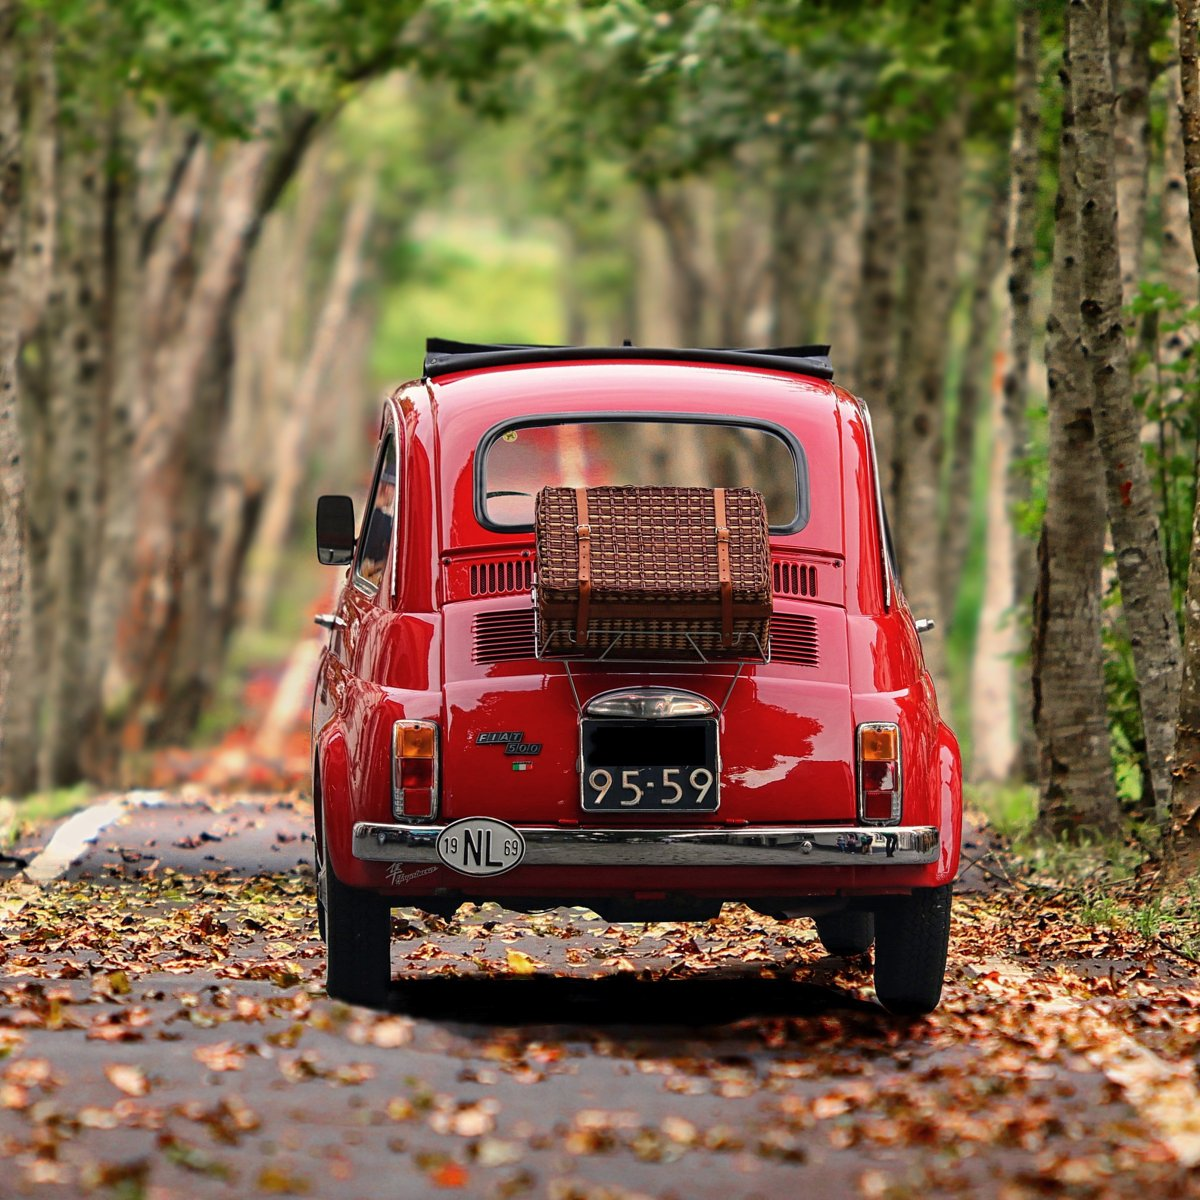 An image of the back of a 1960s red Volkswagen Beetle as it drives away down a leaf-strewn road. The road is lined with tall trees.